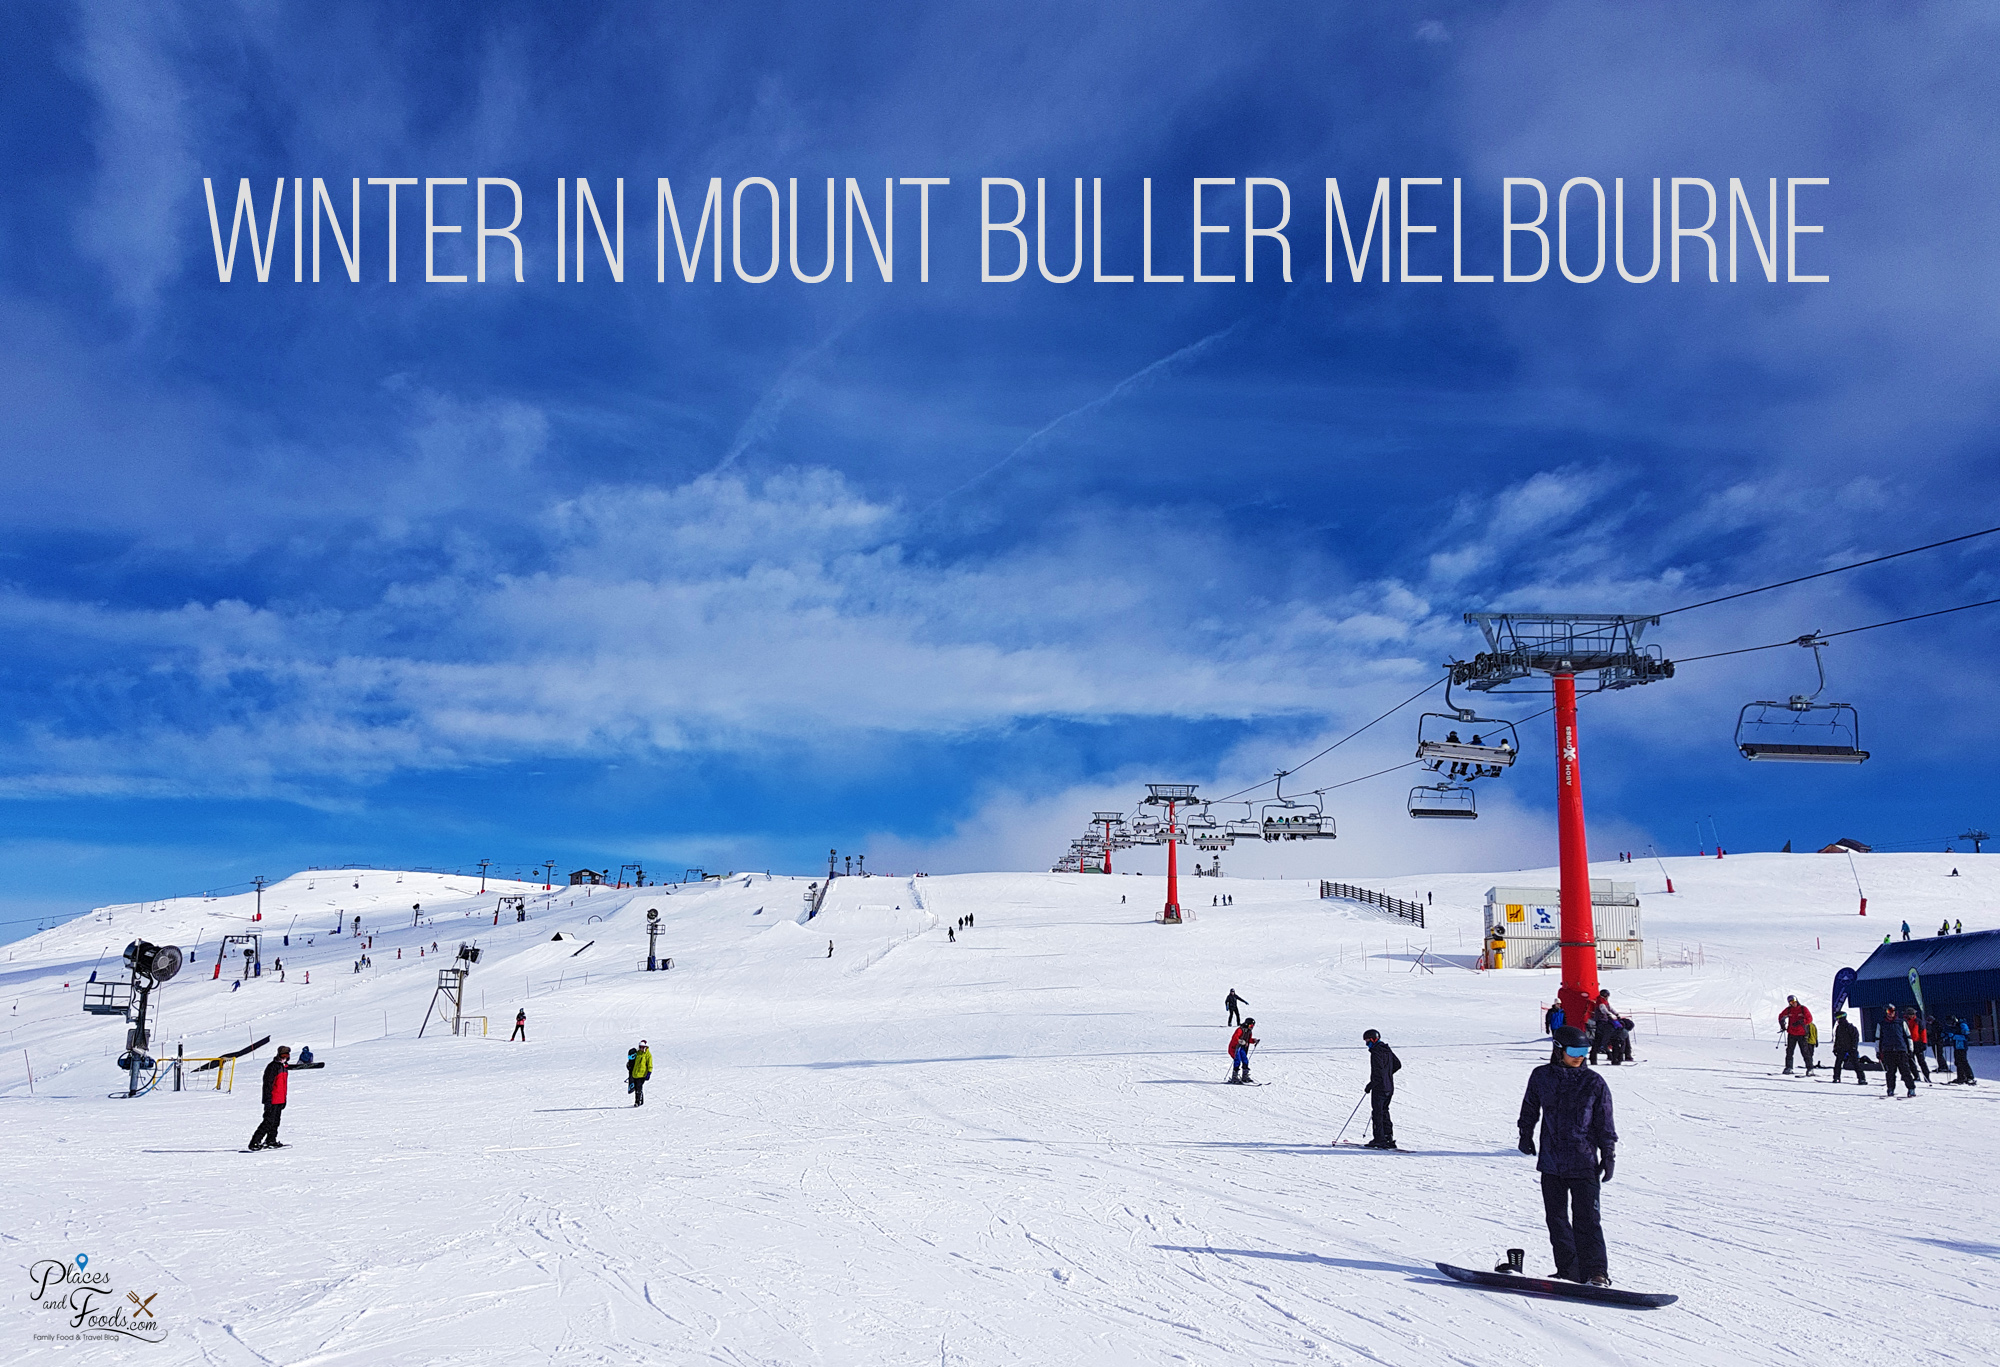 Winter in Mount Buller Melbourne Victoria Australia: Snow, Ski and Huskies Sledding Tour